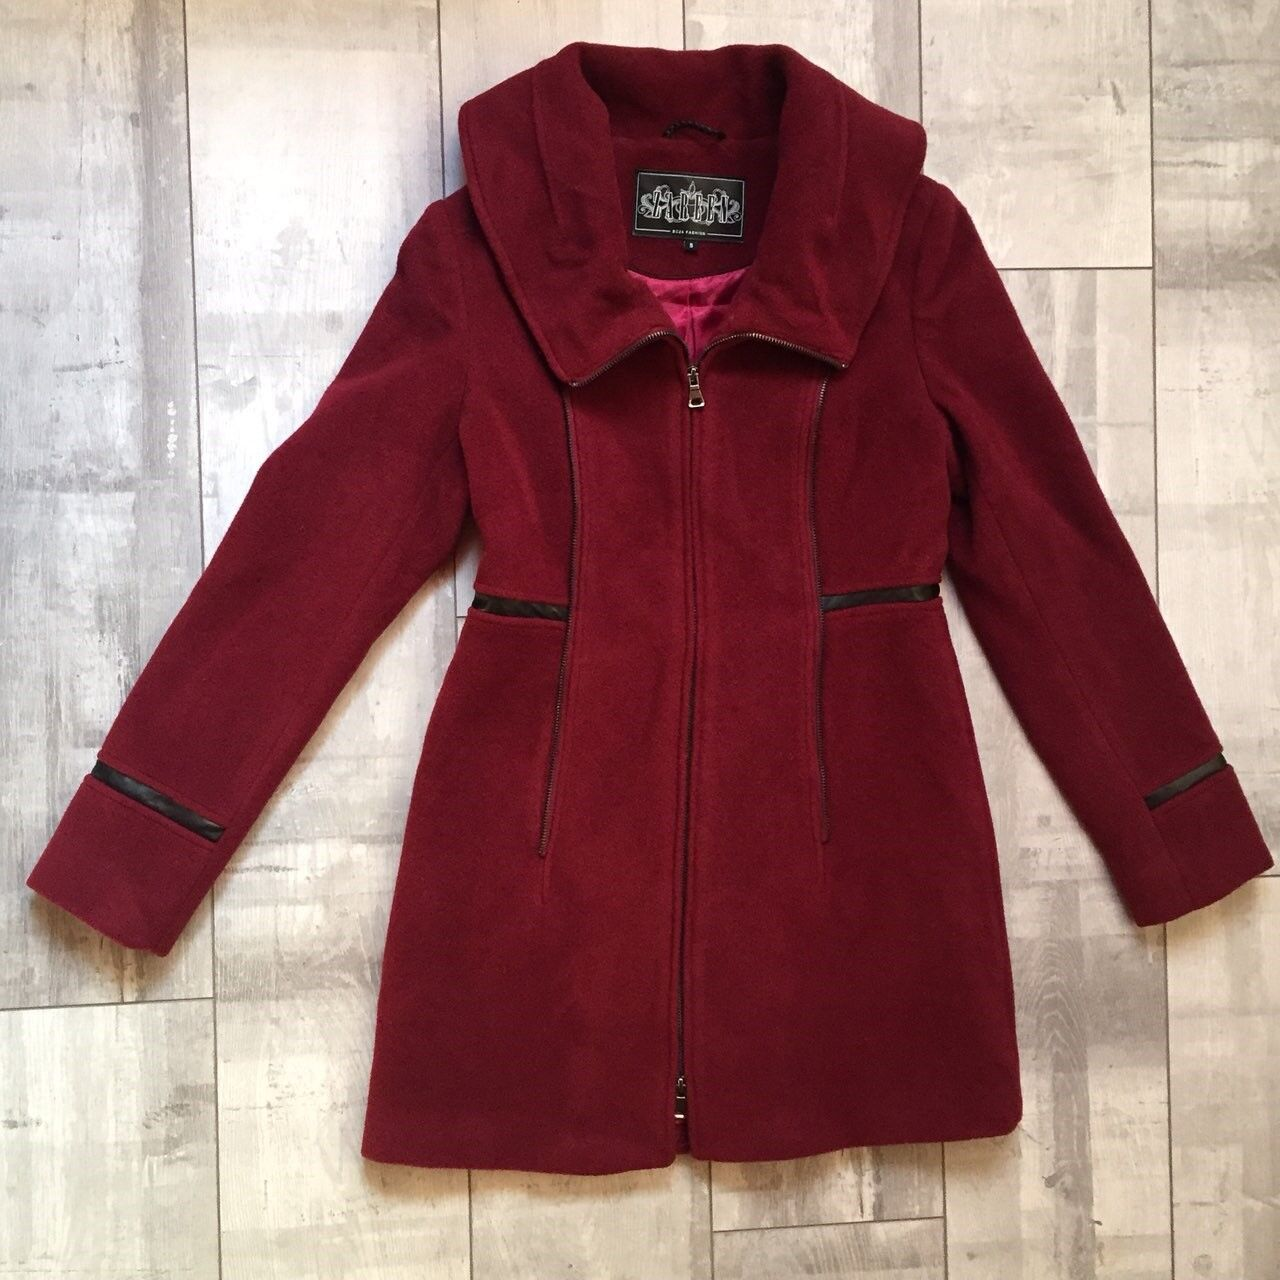 Zareen by BC24 Woman Wool Coat With Front Zipper Details   Burgundy Red   S